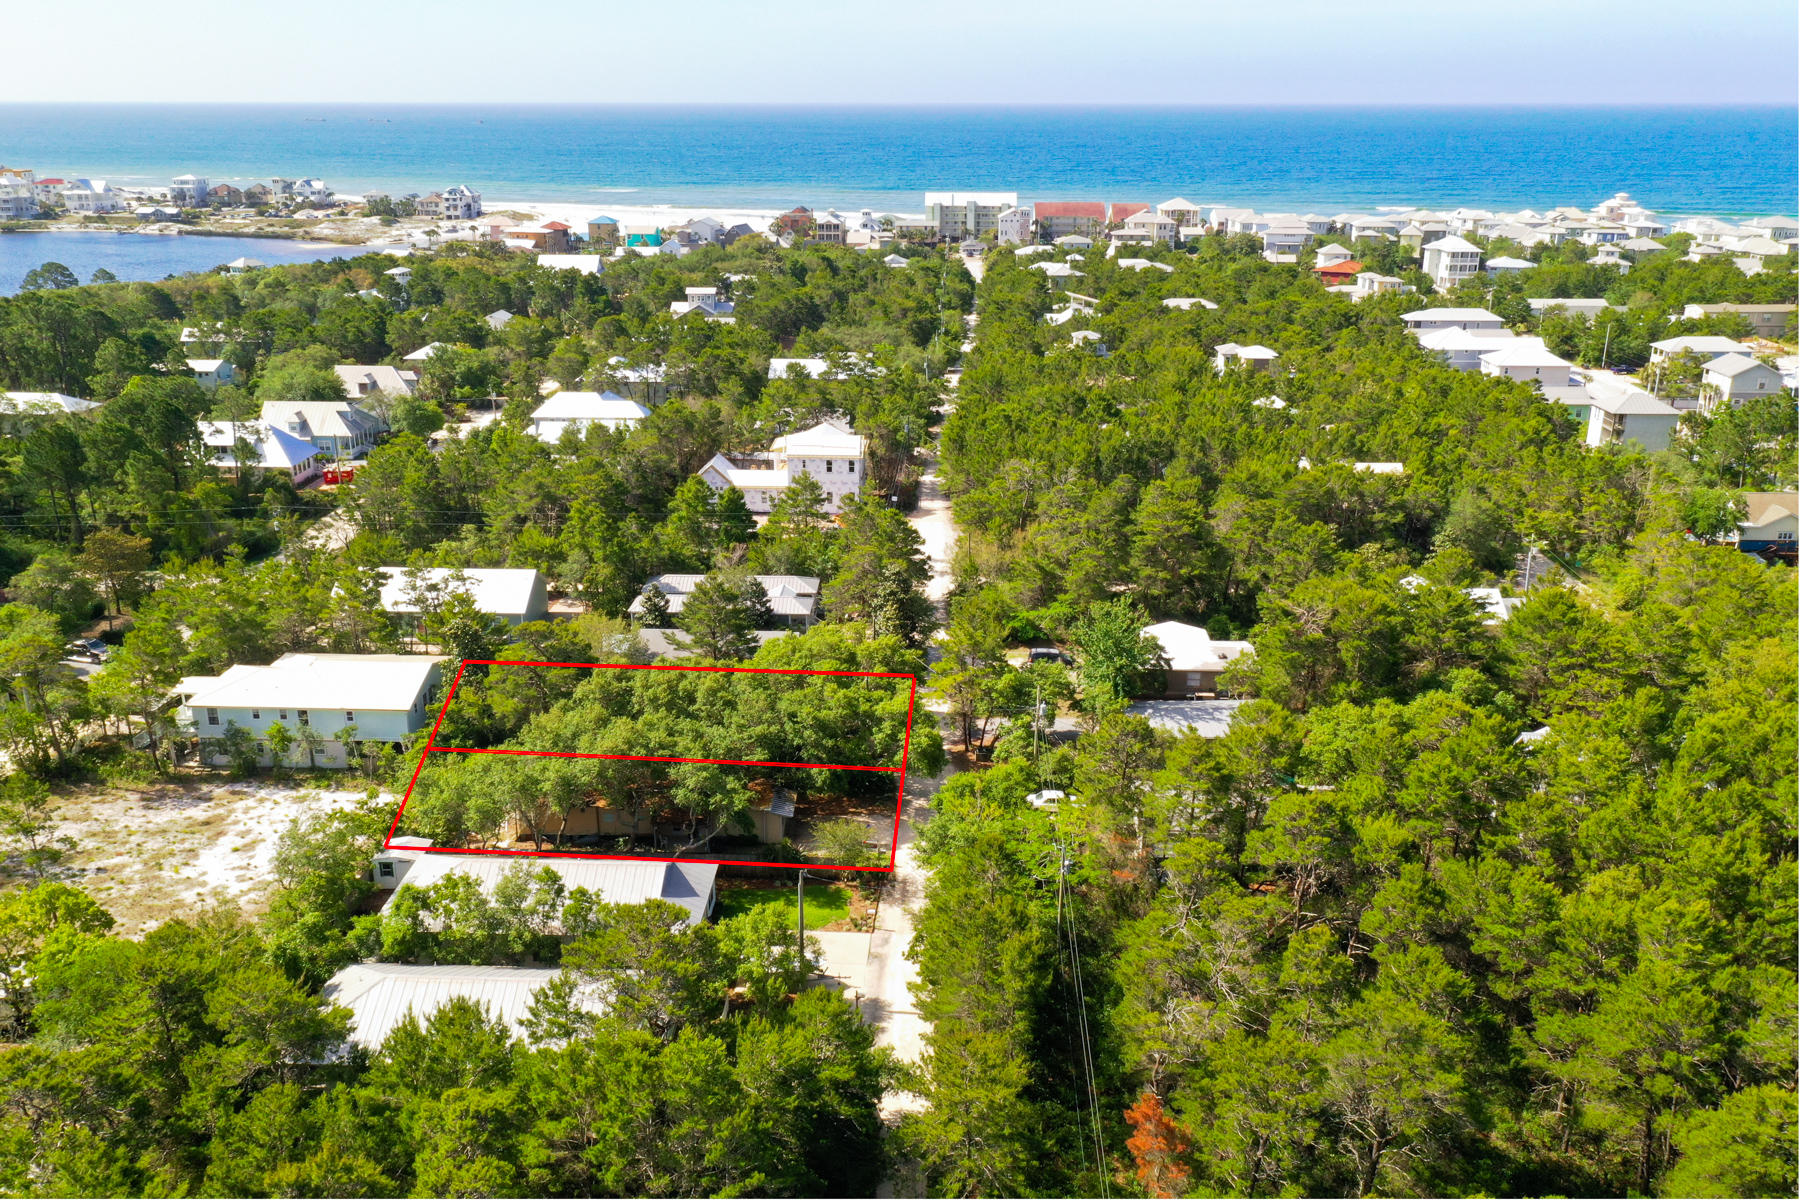 INCREDIBLE LOCATION IN OLD SEAGROVE SOUTH OF 30A! LOT 5 & 8 sold together. Enjoy a short walk or bike to the beach. Incredible oak trees that could provide the perfect opportunity to build your dream vacation home or primary residence.  No HOA or build out time. Lot dimensions 100x108.  All info and measurements are deemed to be accurate, but all info should be verified by buyer and/or buyers agent.